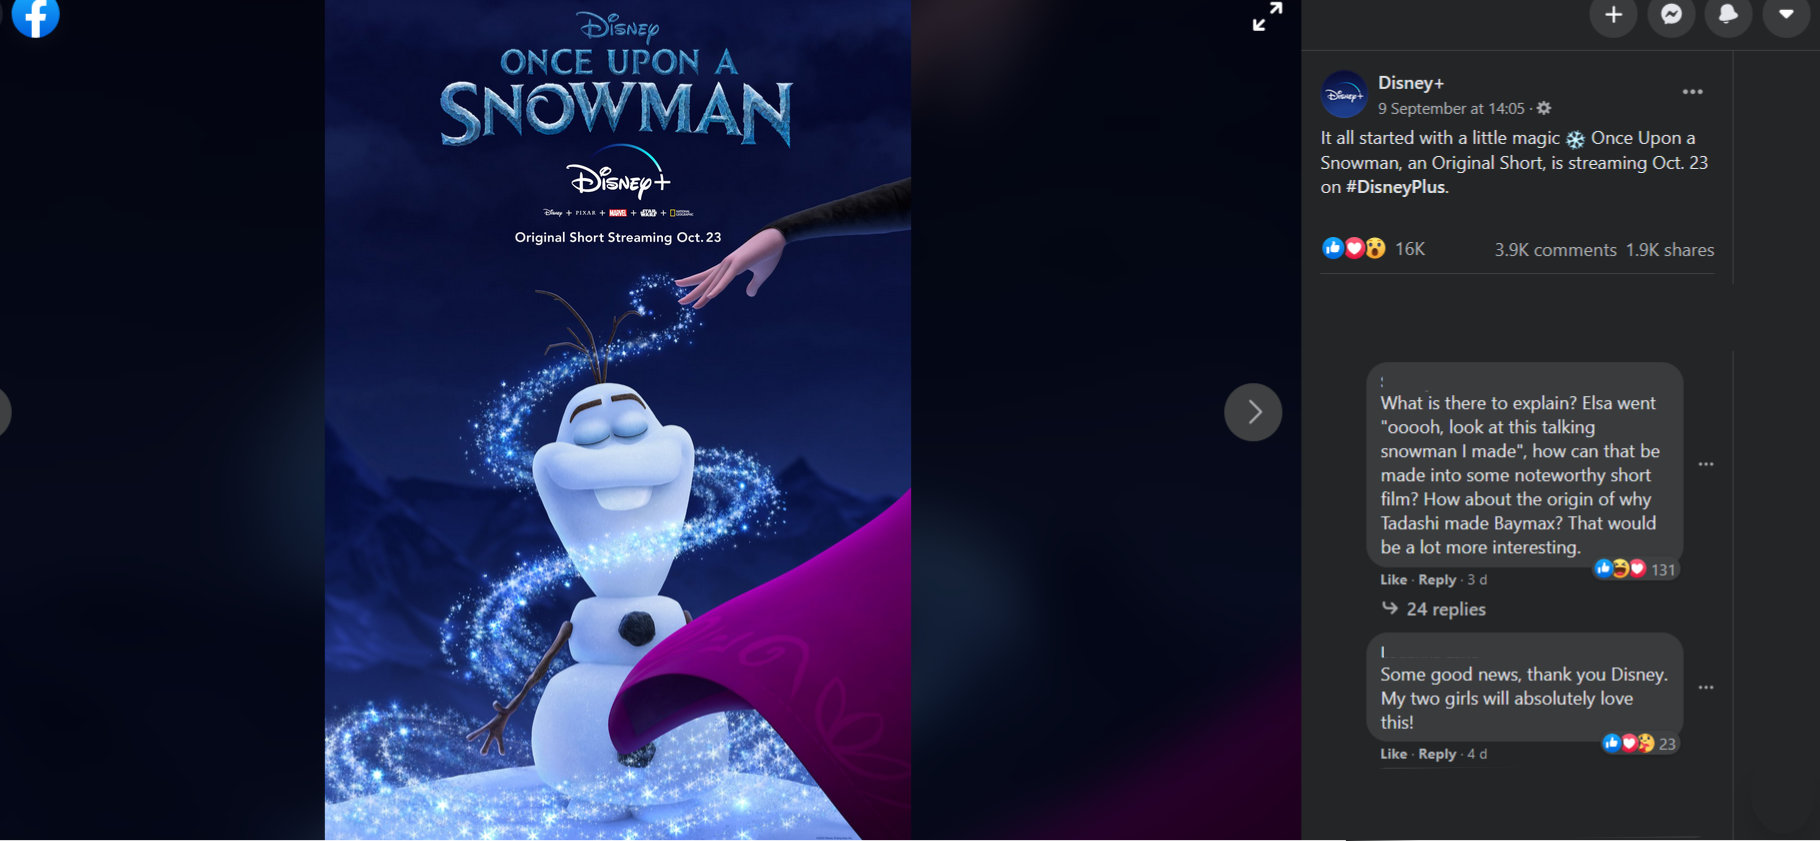 Once upon a snowman coming to Disney Plus